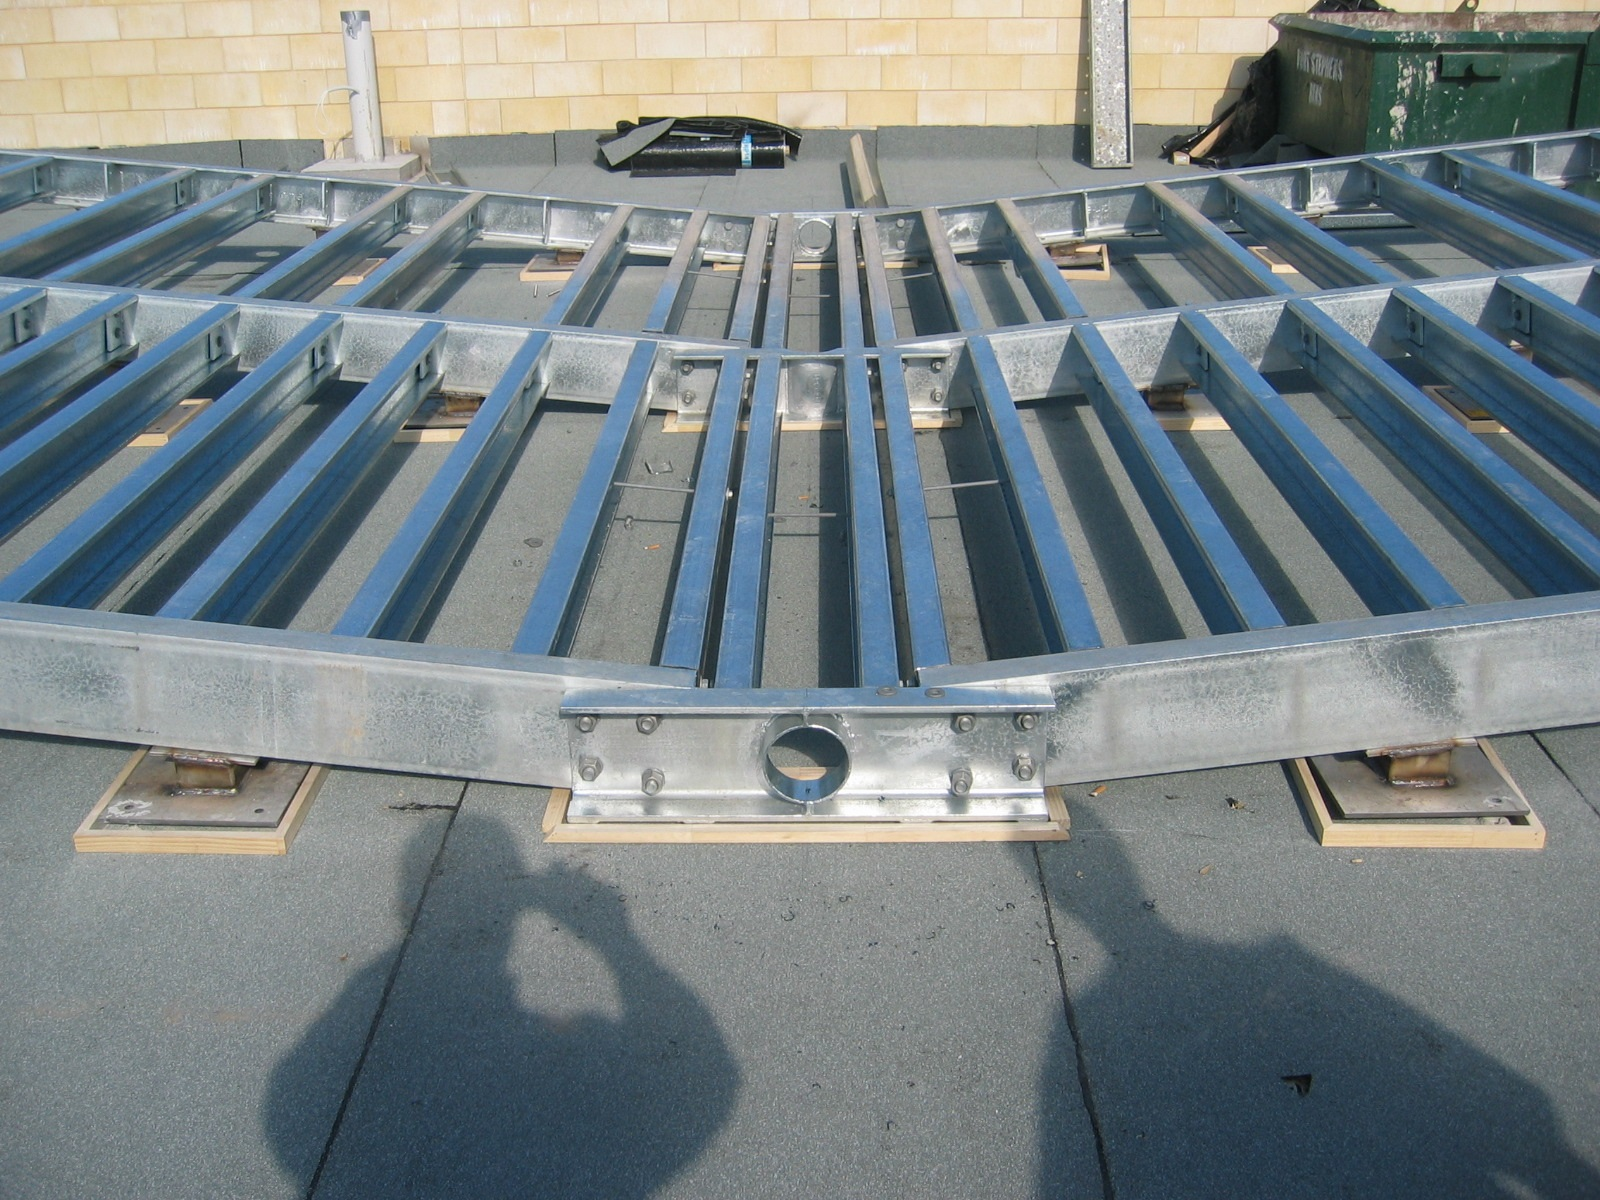 Steel cradle to support fibreglass swimming pool